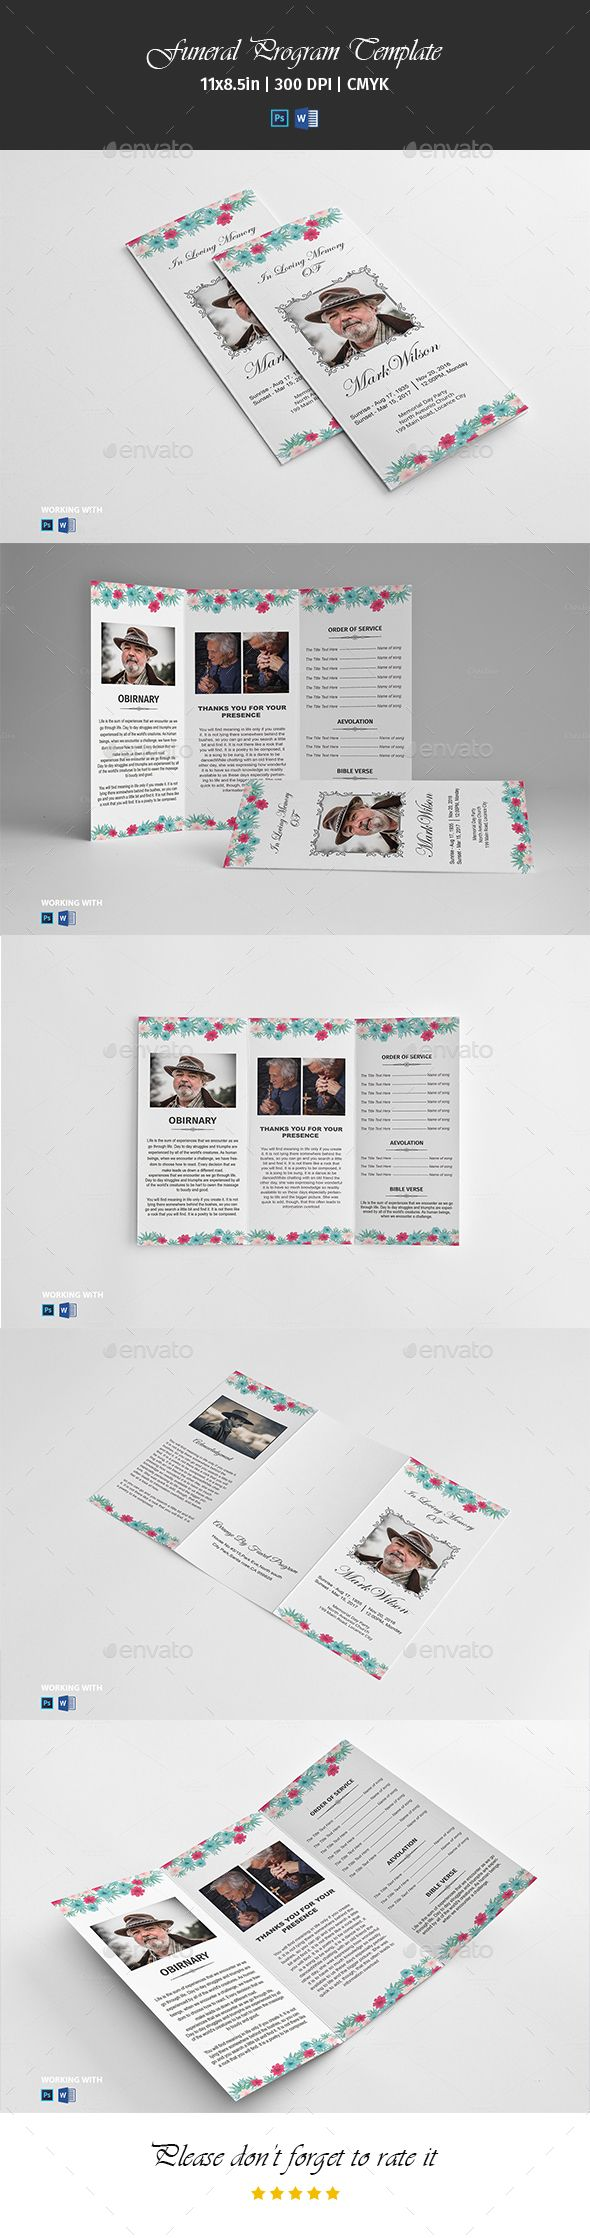 Trifold Funeral Program Template Vol04 PSD Brochure Floral